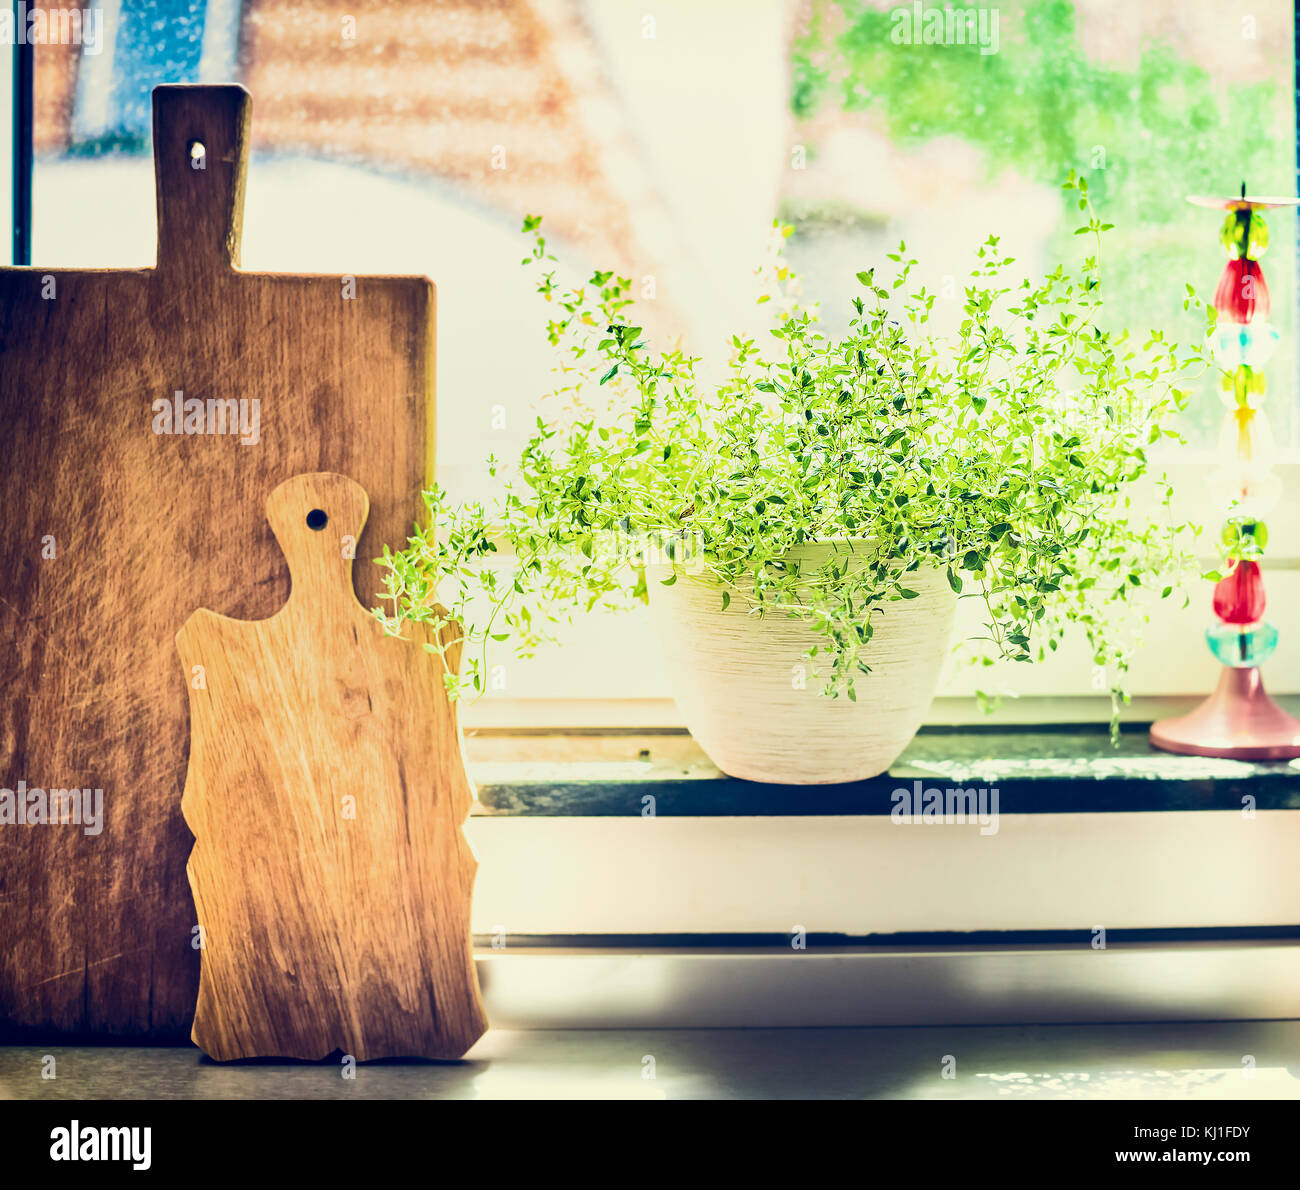 Kitchen cooking herbs in flowers pot on window still with cuting board - Stock Image